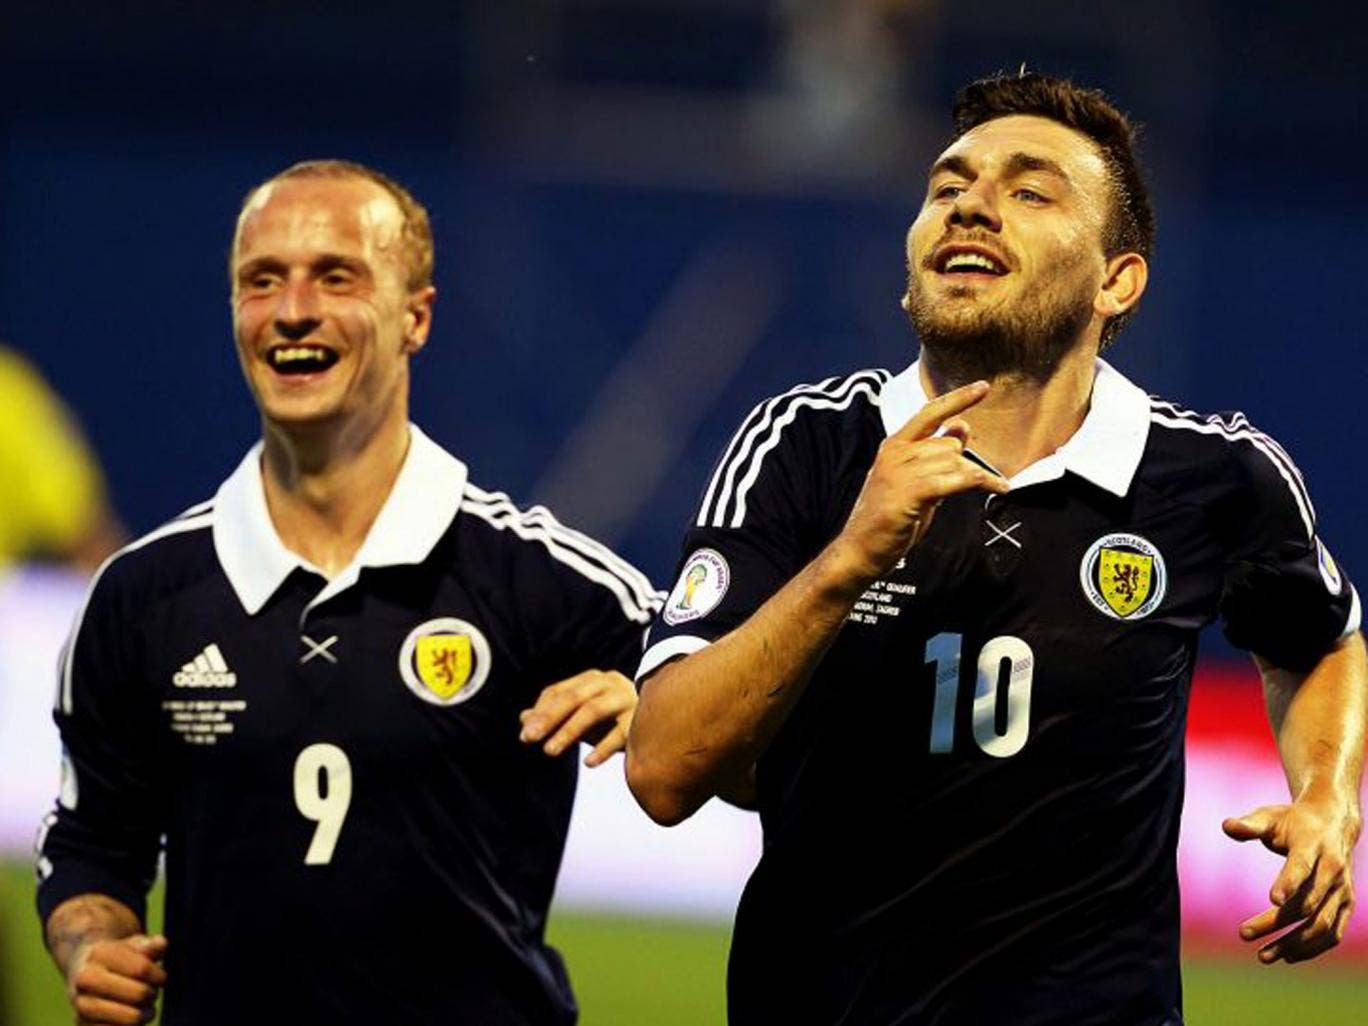 Scotland's Robert Snodgrass celebrates with his teammate Leigh Griffiths after scoring